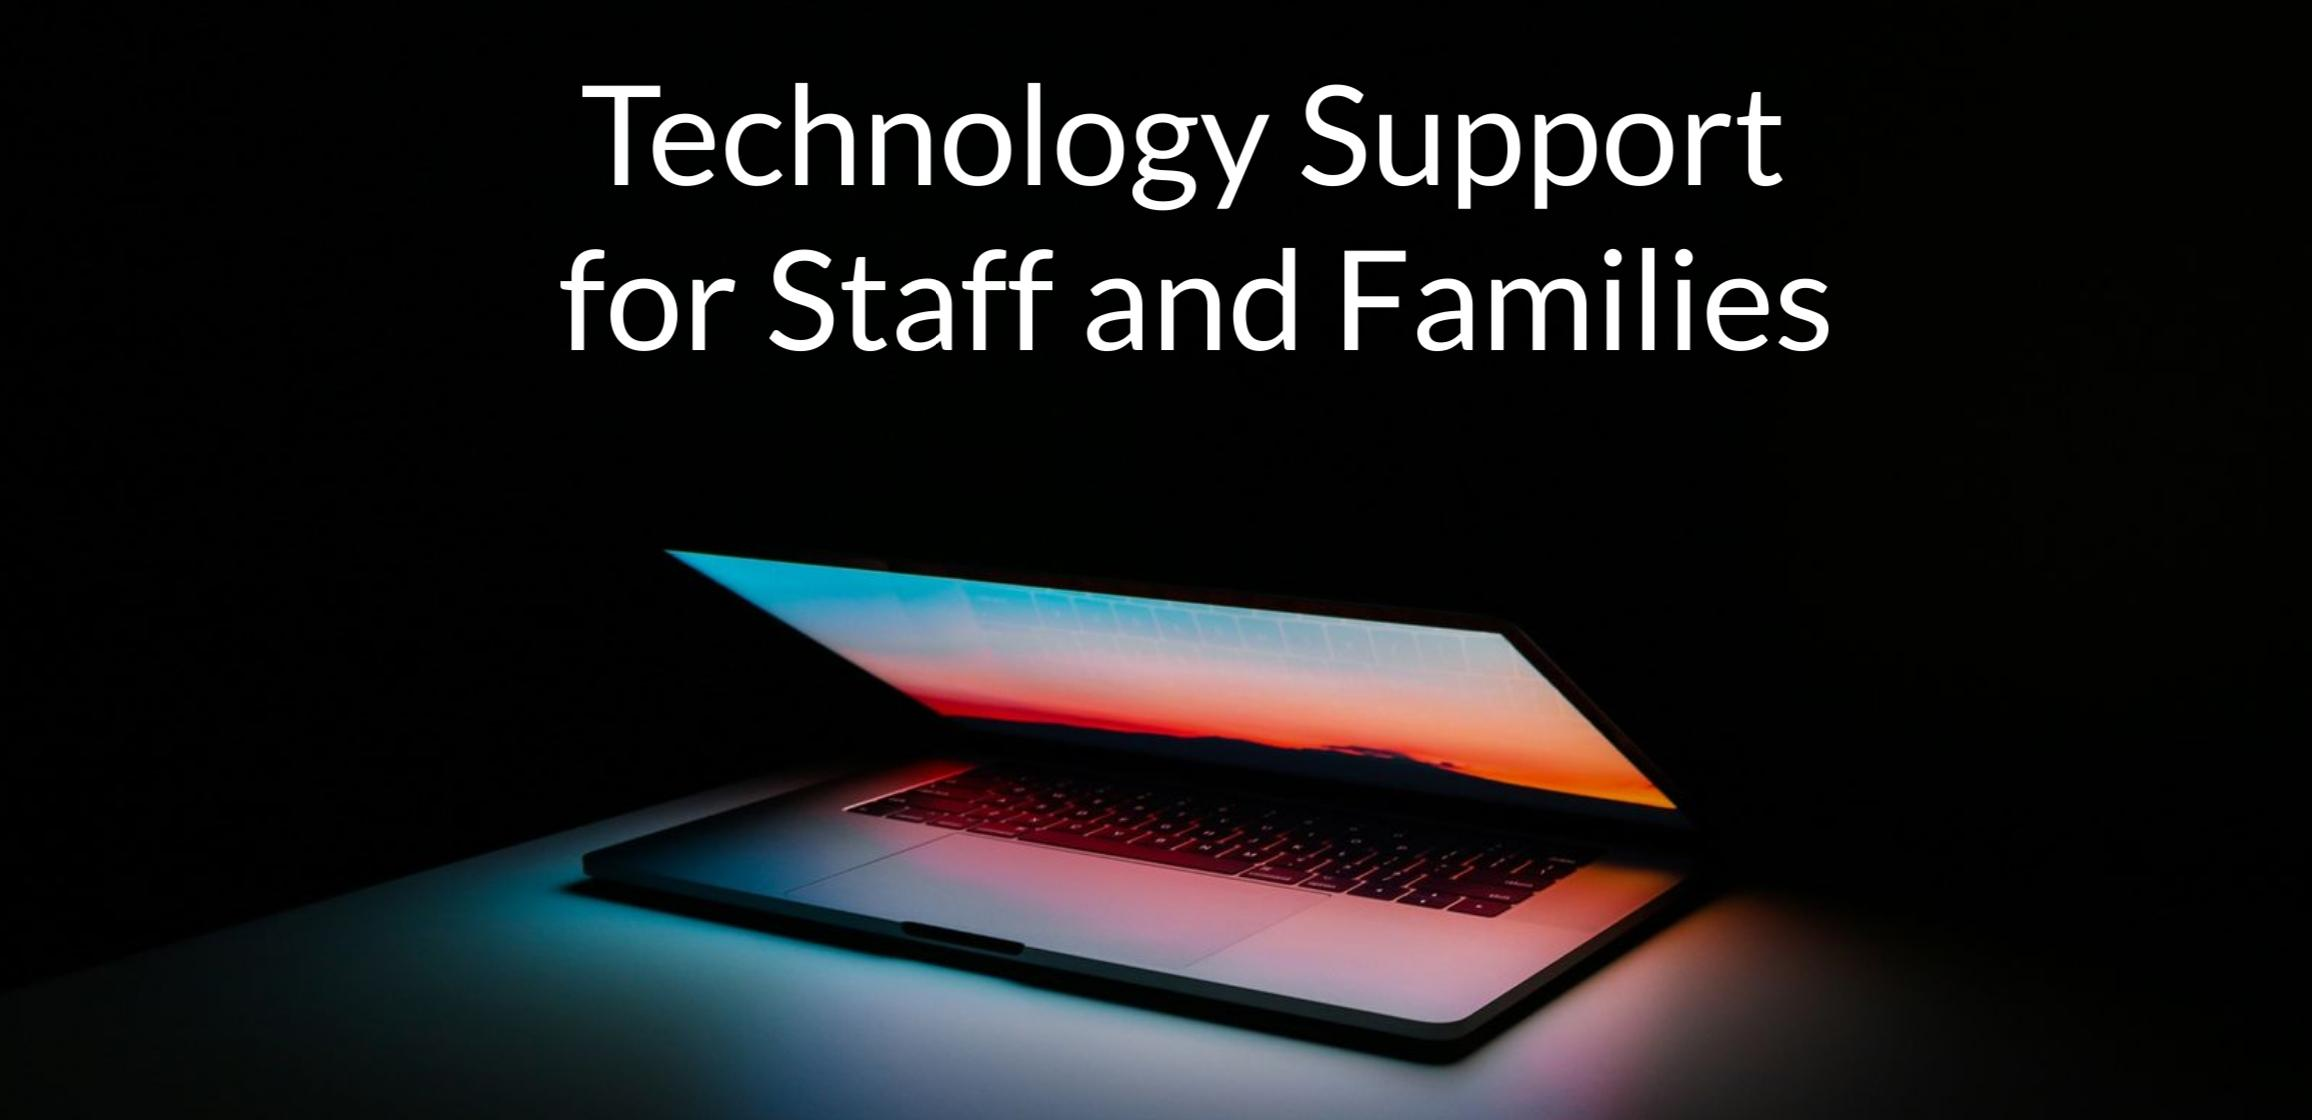 Technology Support for Staff and Families